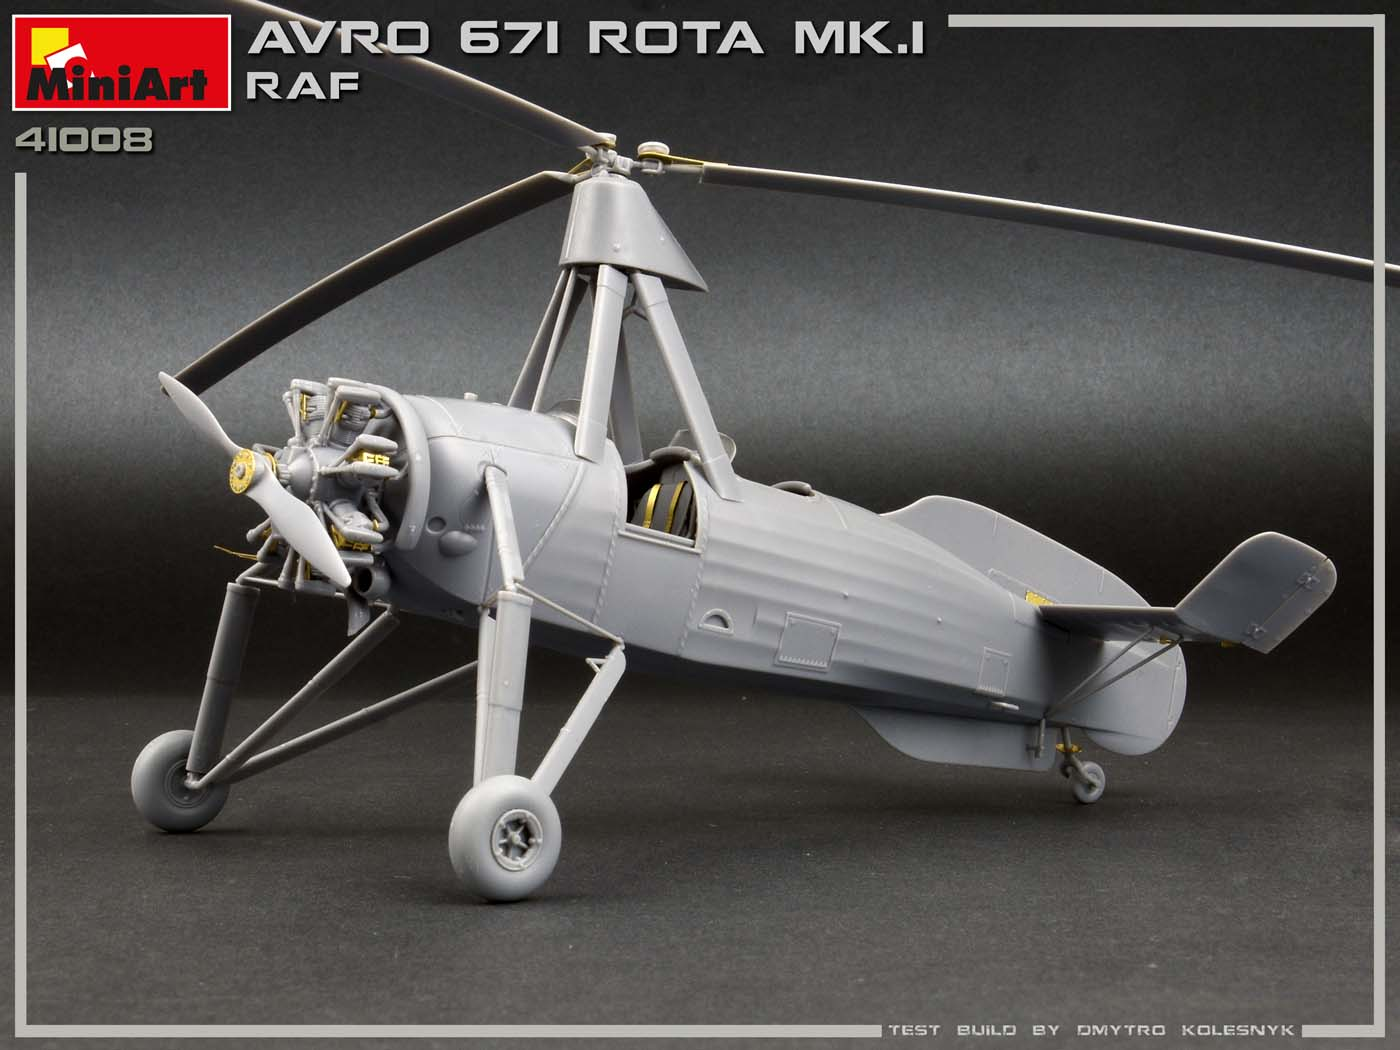 New Build Up Photos of Kit: 41008 AVRO 671 ROTA MK.I RAF